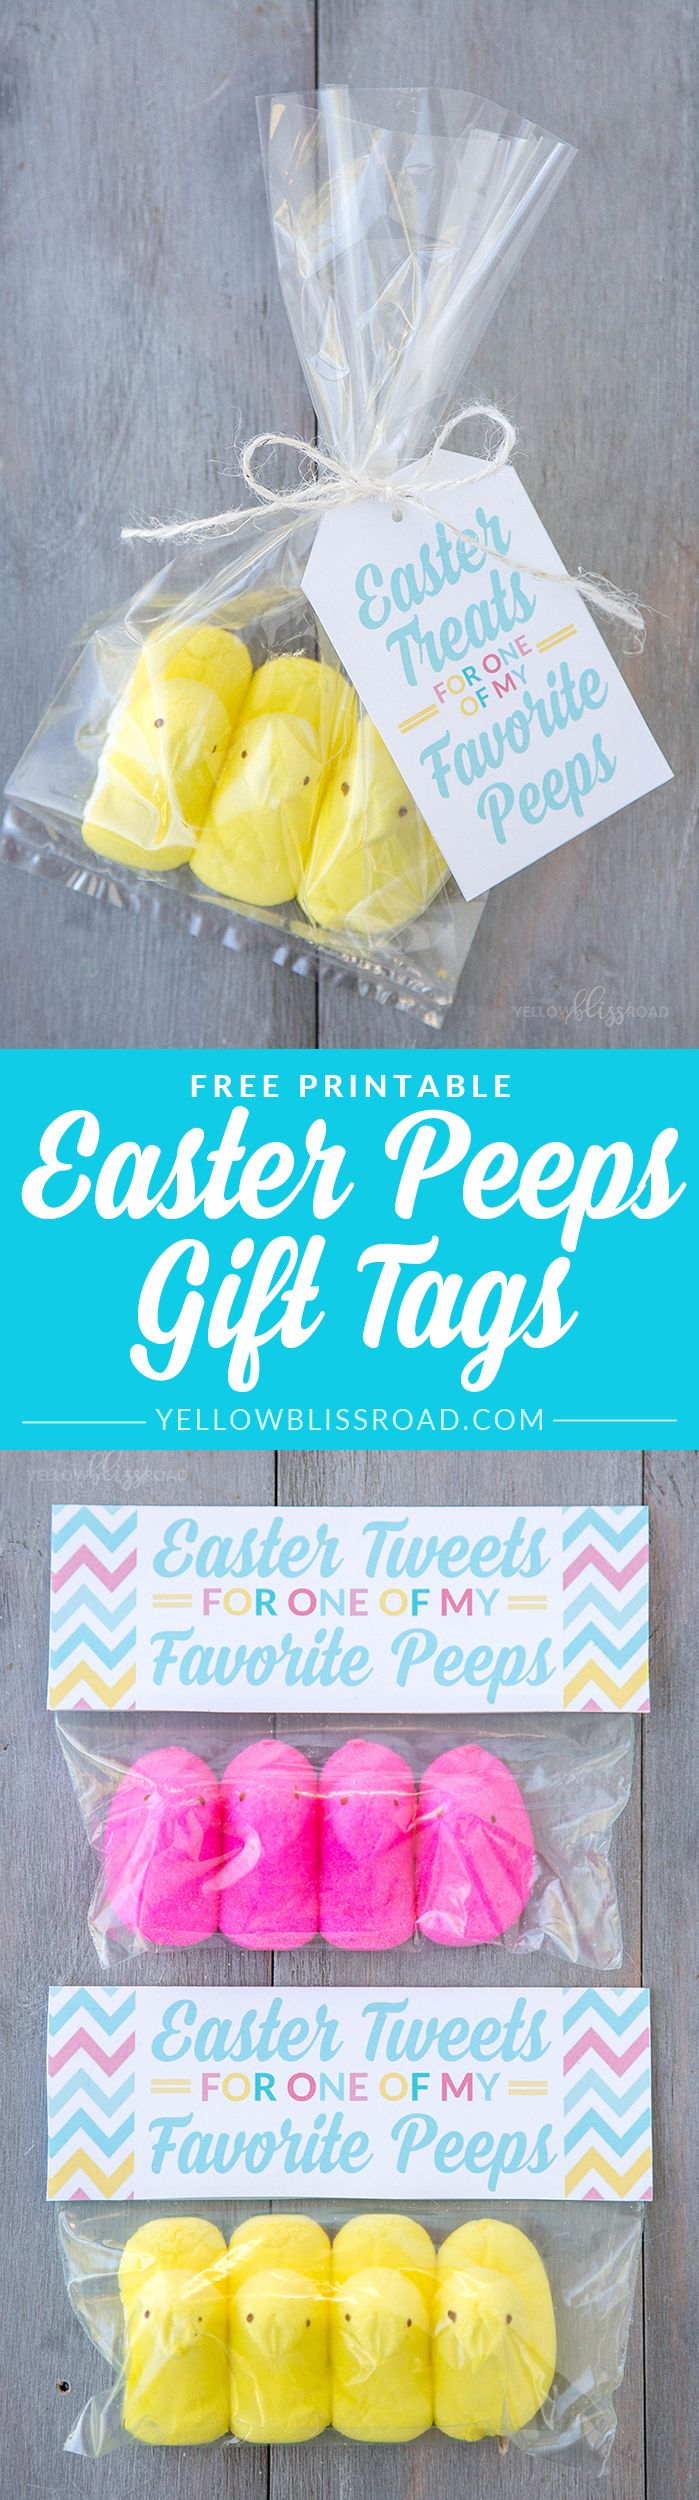 Peeps easter gift idea with free printables free printable gift free printable peeps easter gift tags use these free printable gift tags to make sweet negle